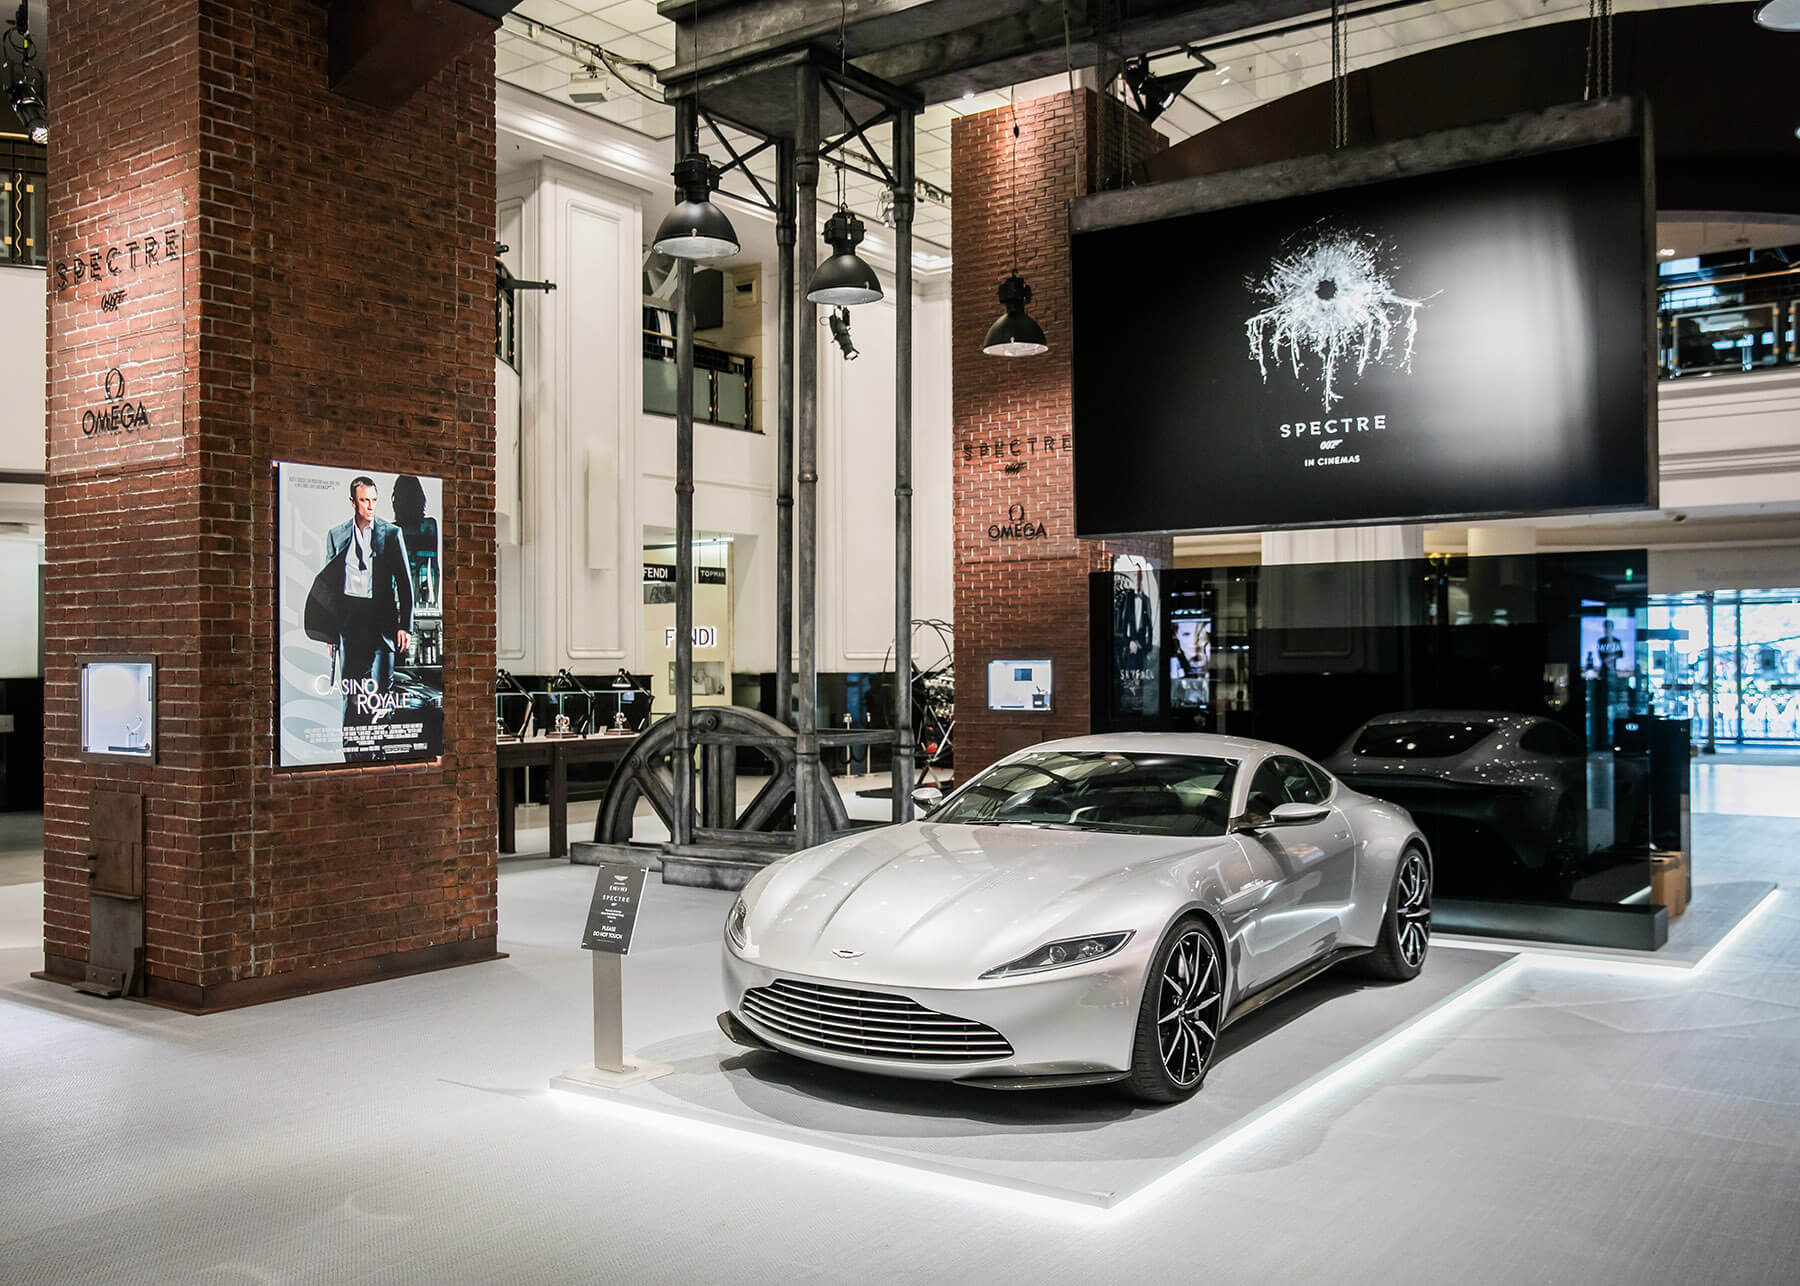 OMEGA James Bond SPECTRE Event Experiences